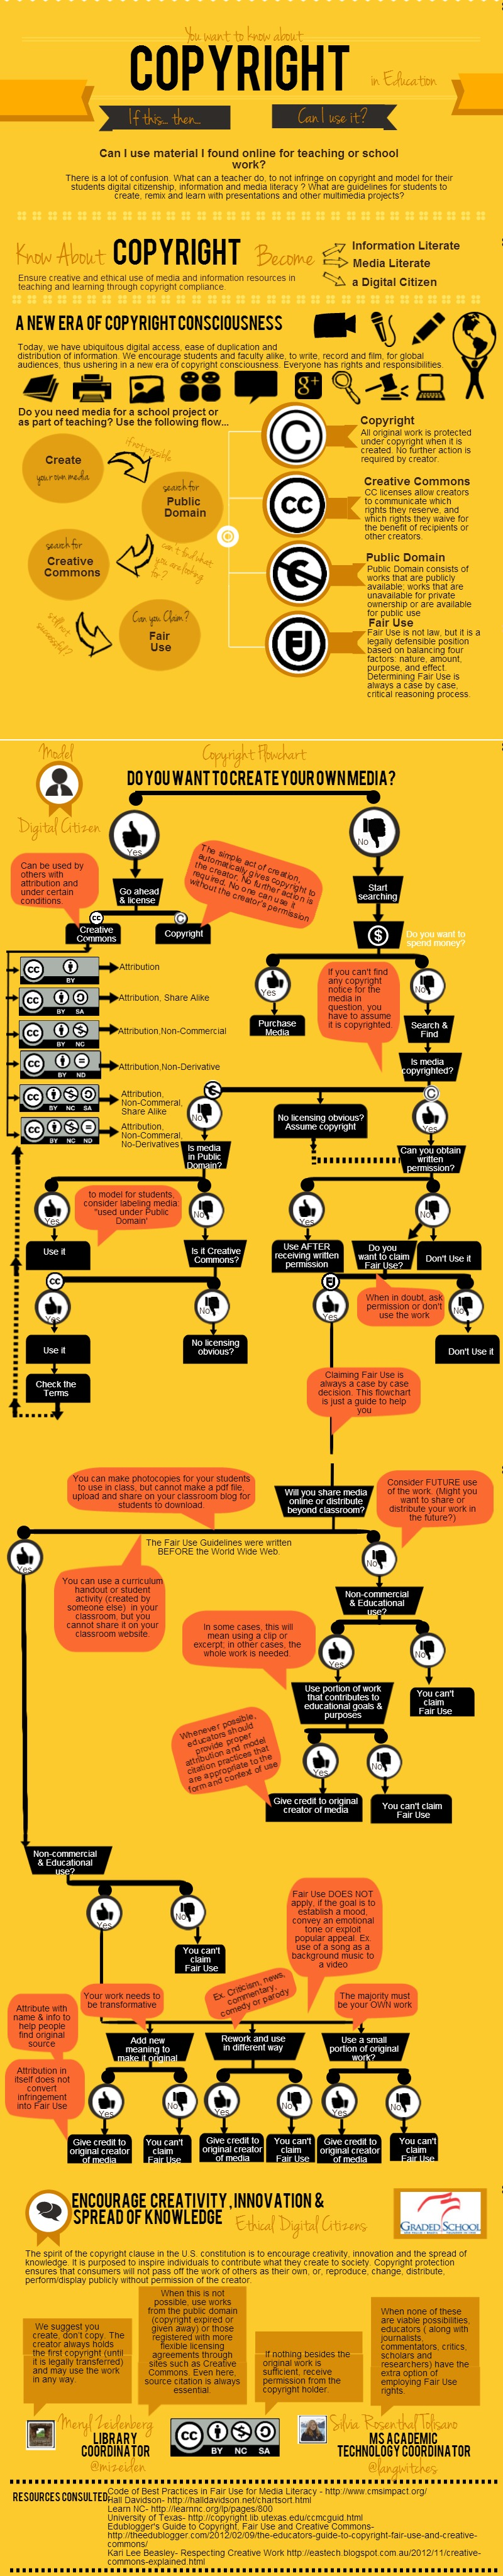 Created by Silvia Tolisano http://langwitches.org/blog/wp-content/uploads/2014/06/Copyright-Flowchart.jpg